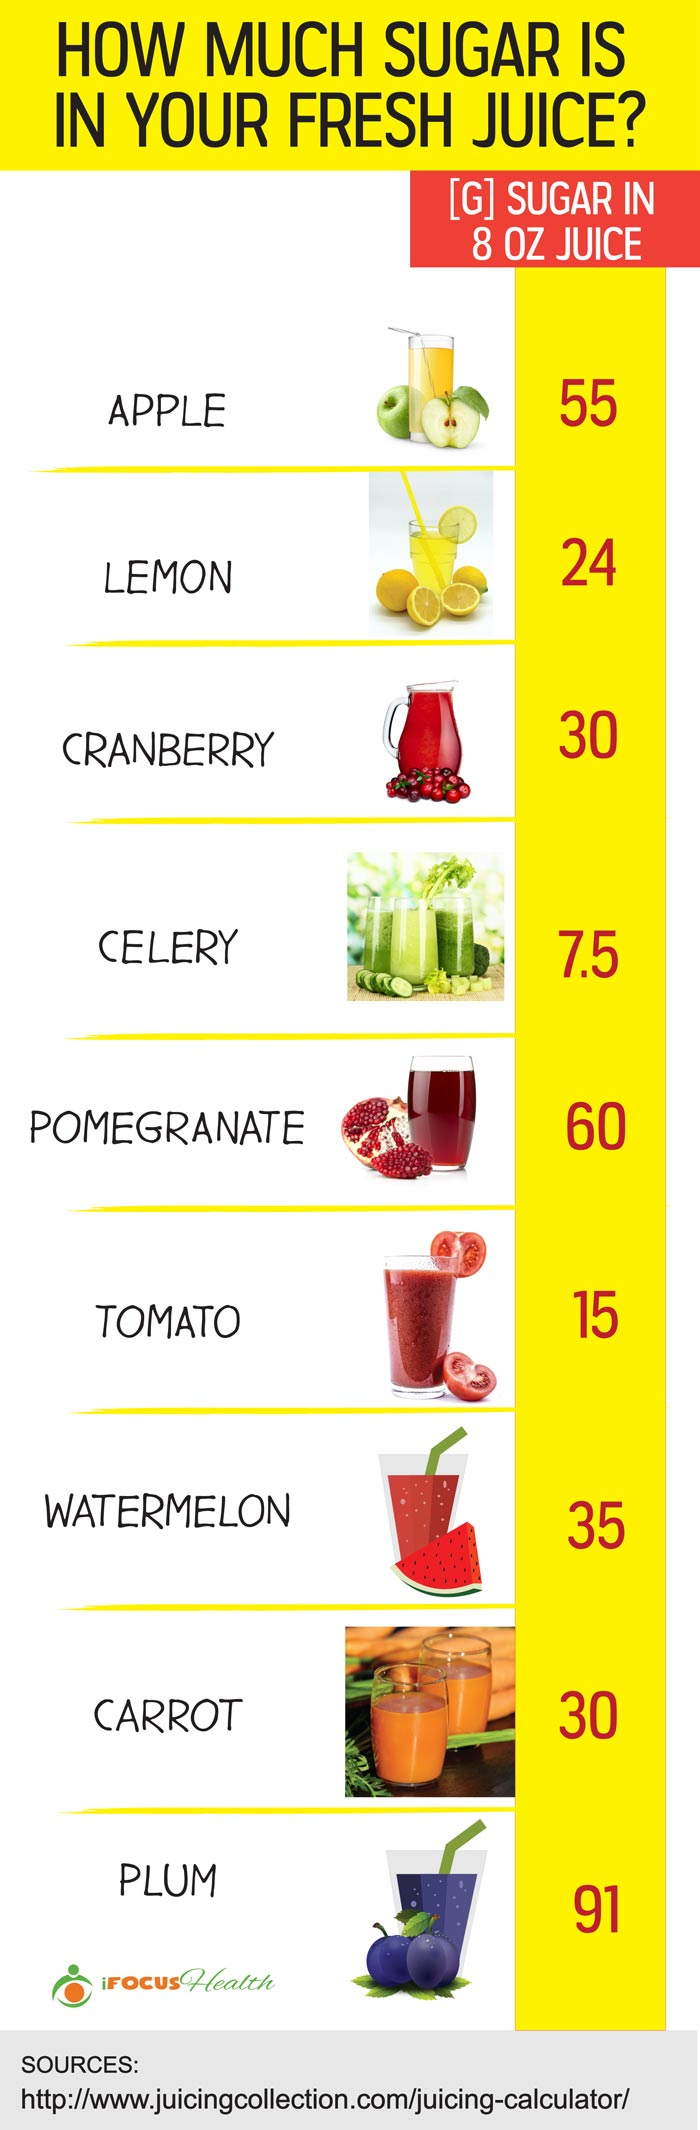 sugar in fresh juice chart infographic